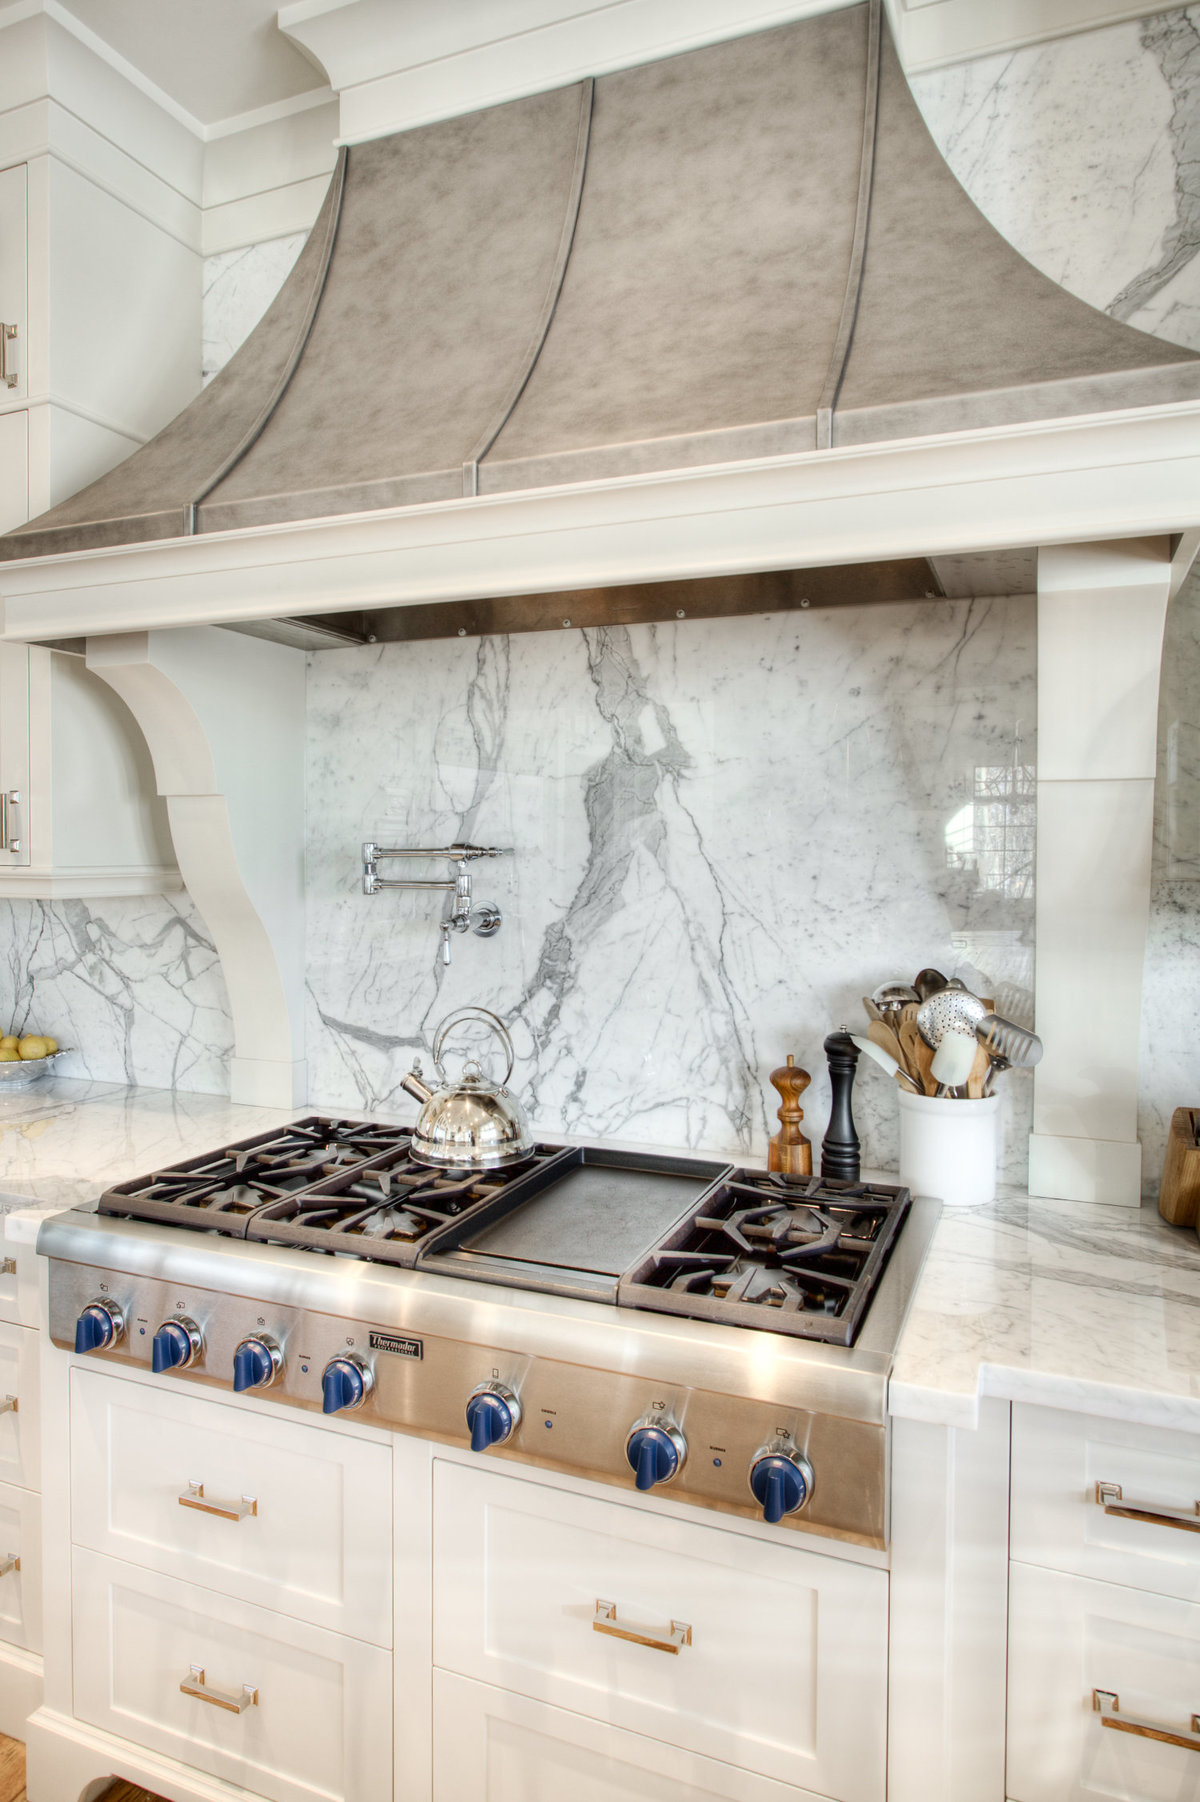 custom-stainless-steel-hood